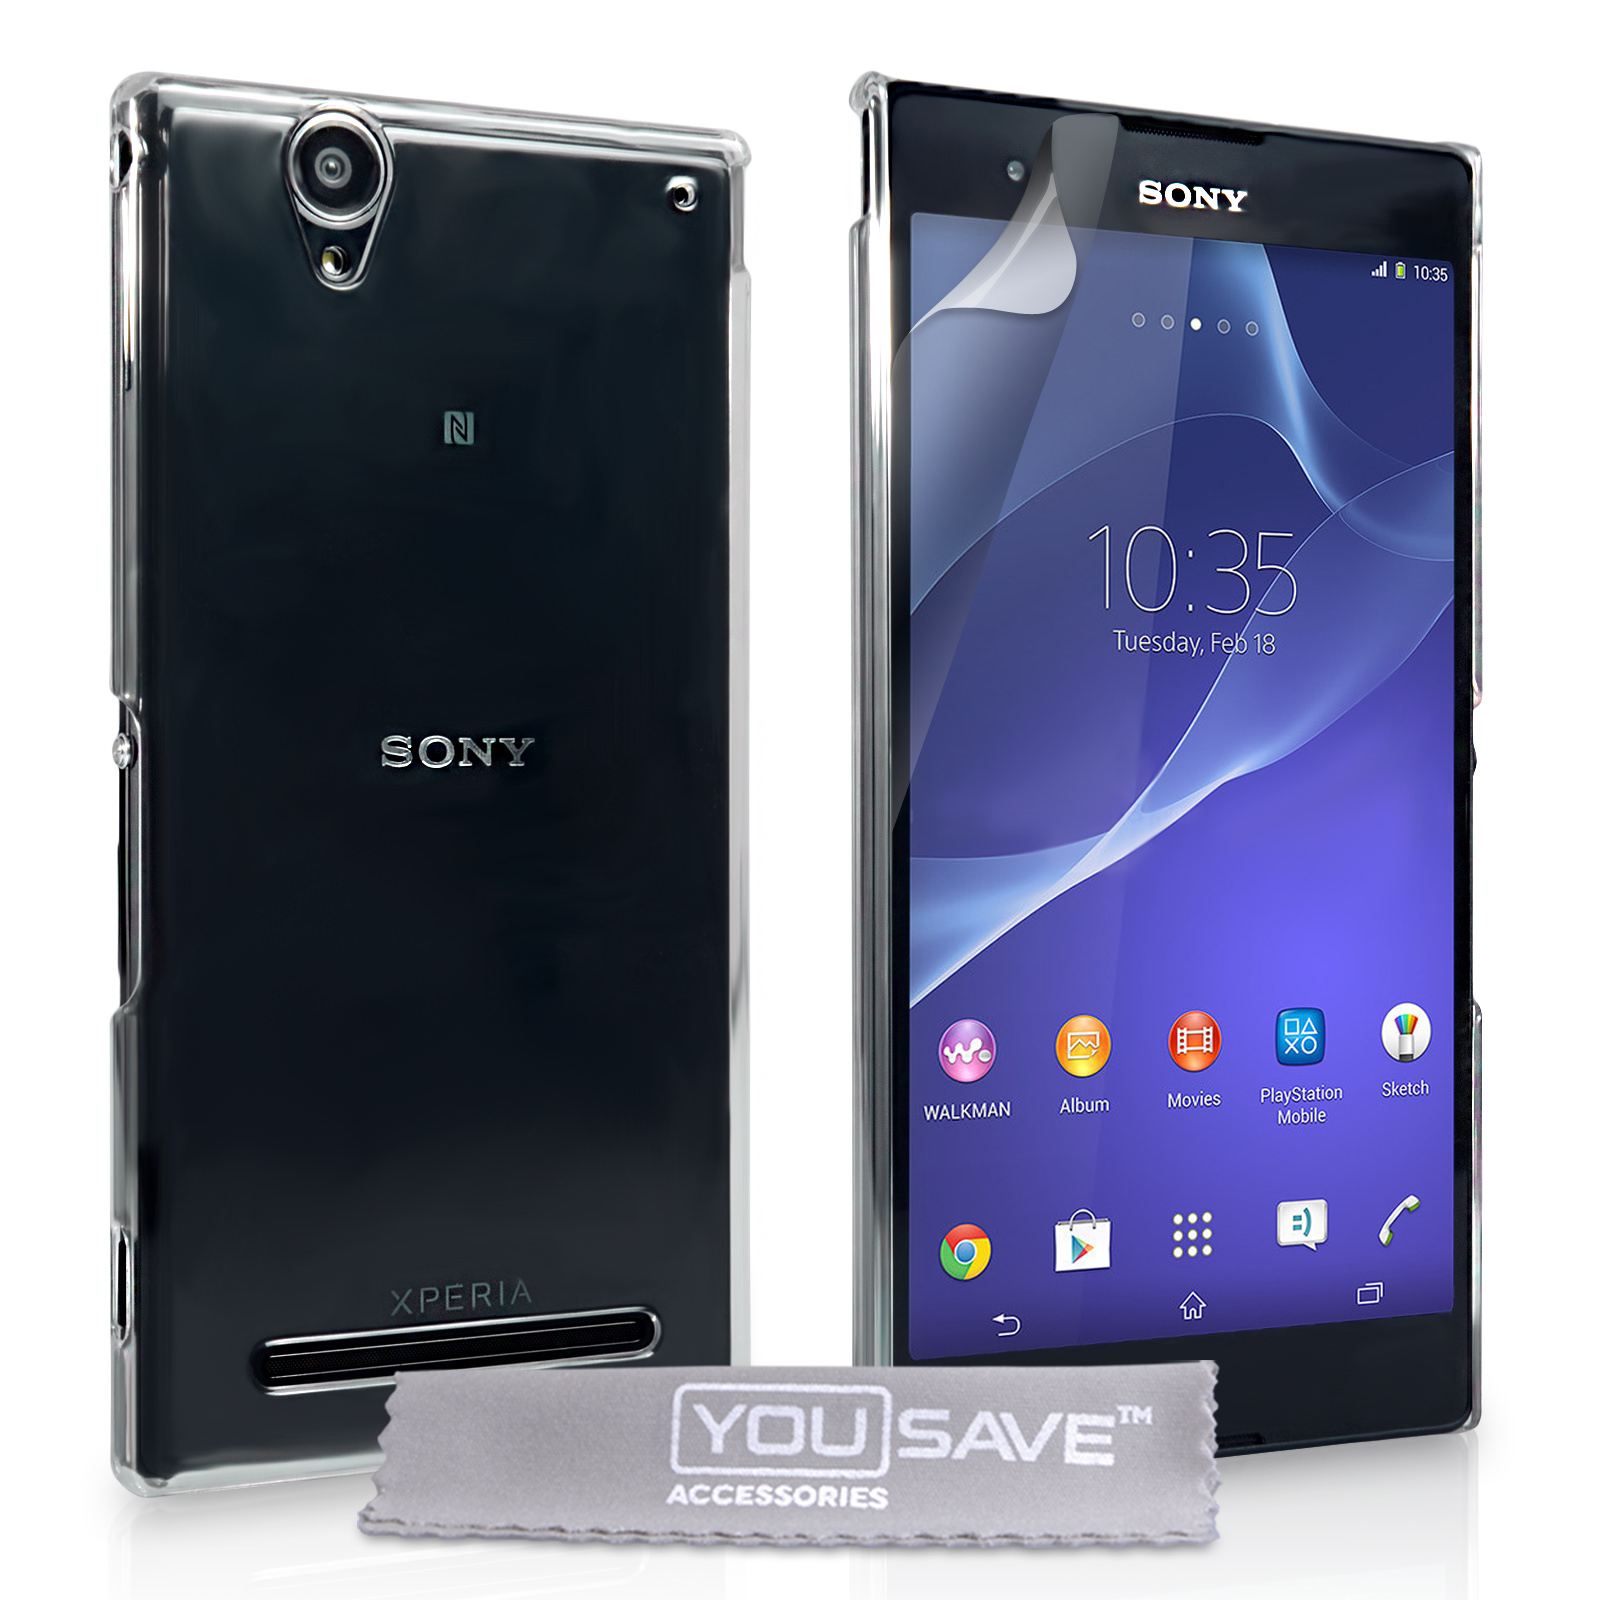 YouSave Accessories Sony Xperia T2 Ultra Hard Case - Crystal Clear